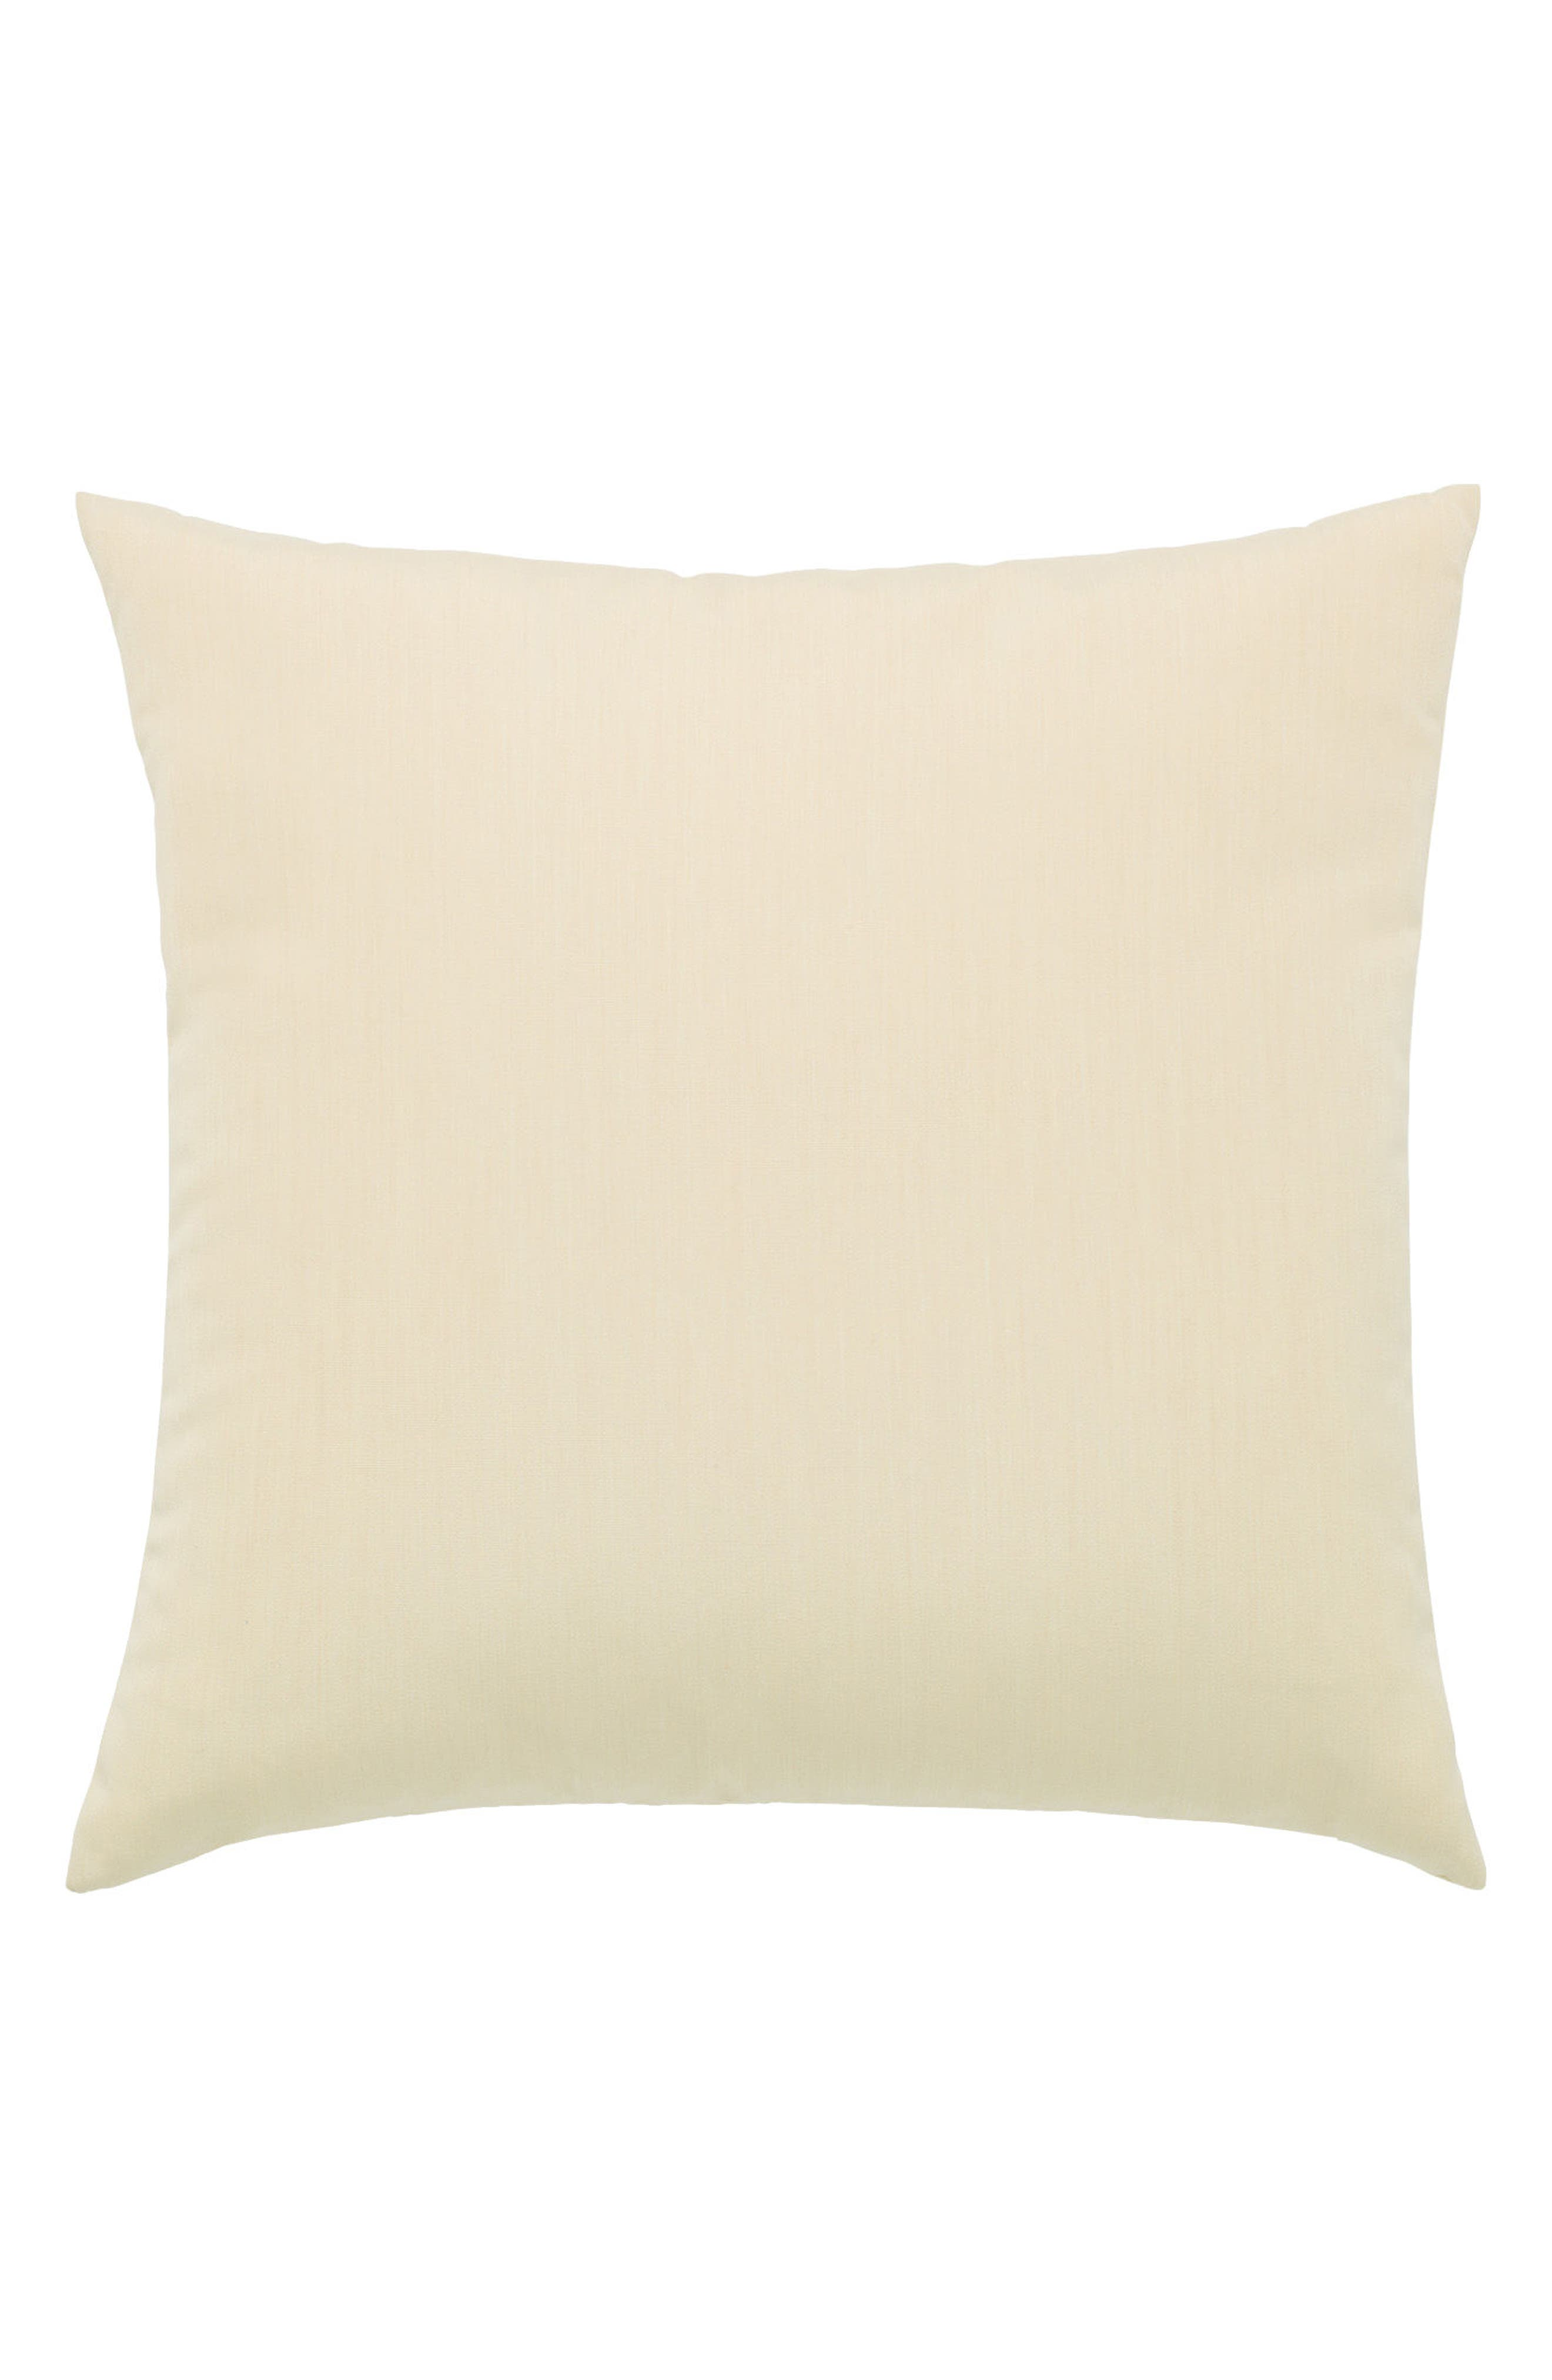 Deco Indoor/Outdoor Accent Pillow,                             Alternate thumbnail 2, color,                             Blue/ Brown